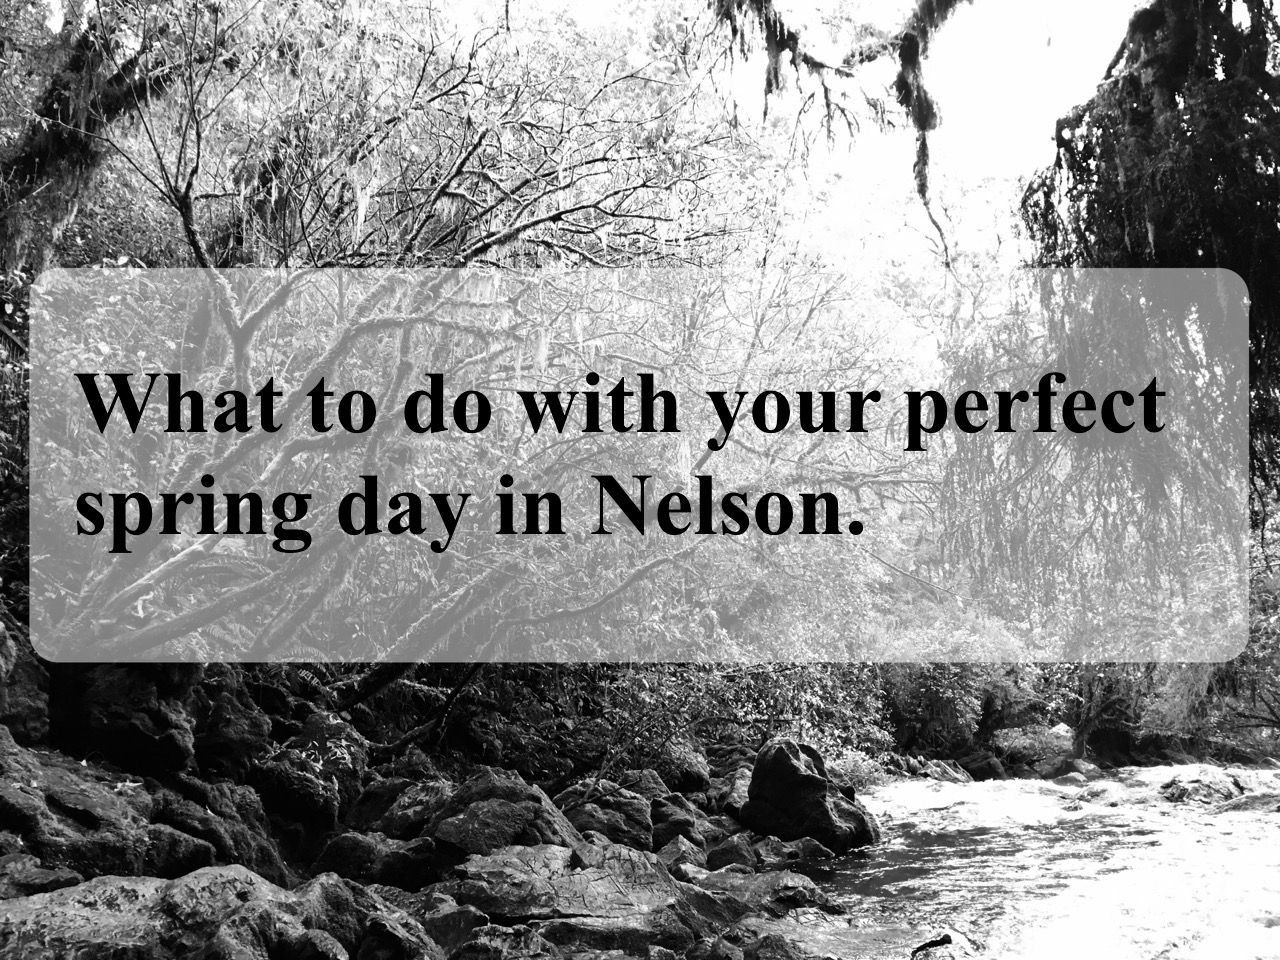 What to do with your perfect spring day in Nelson